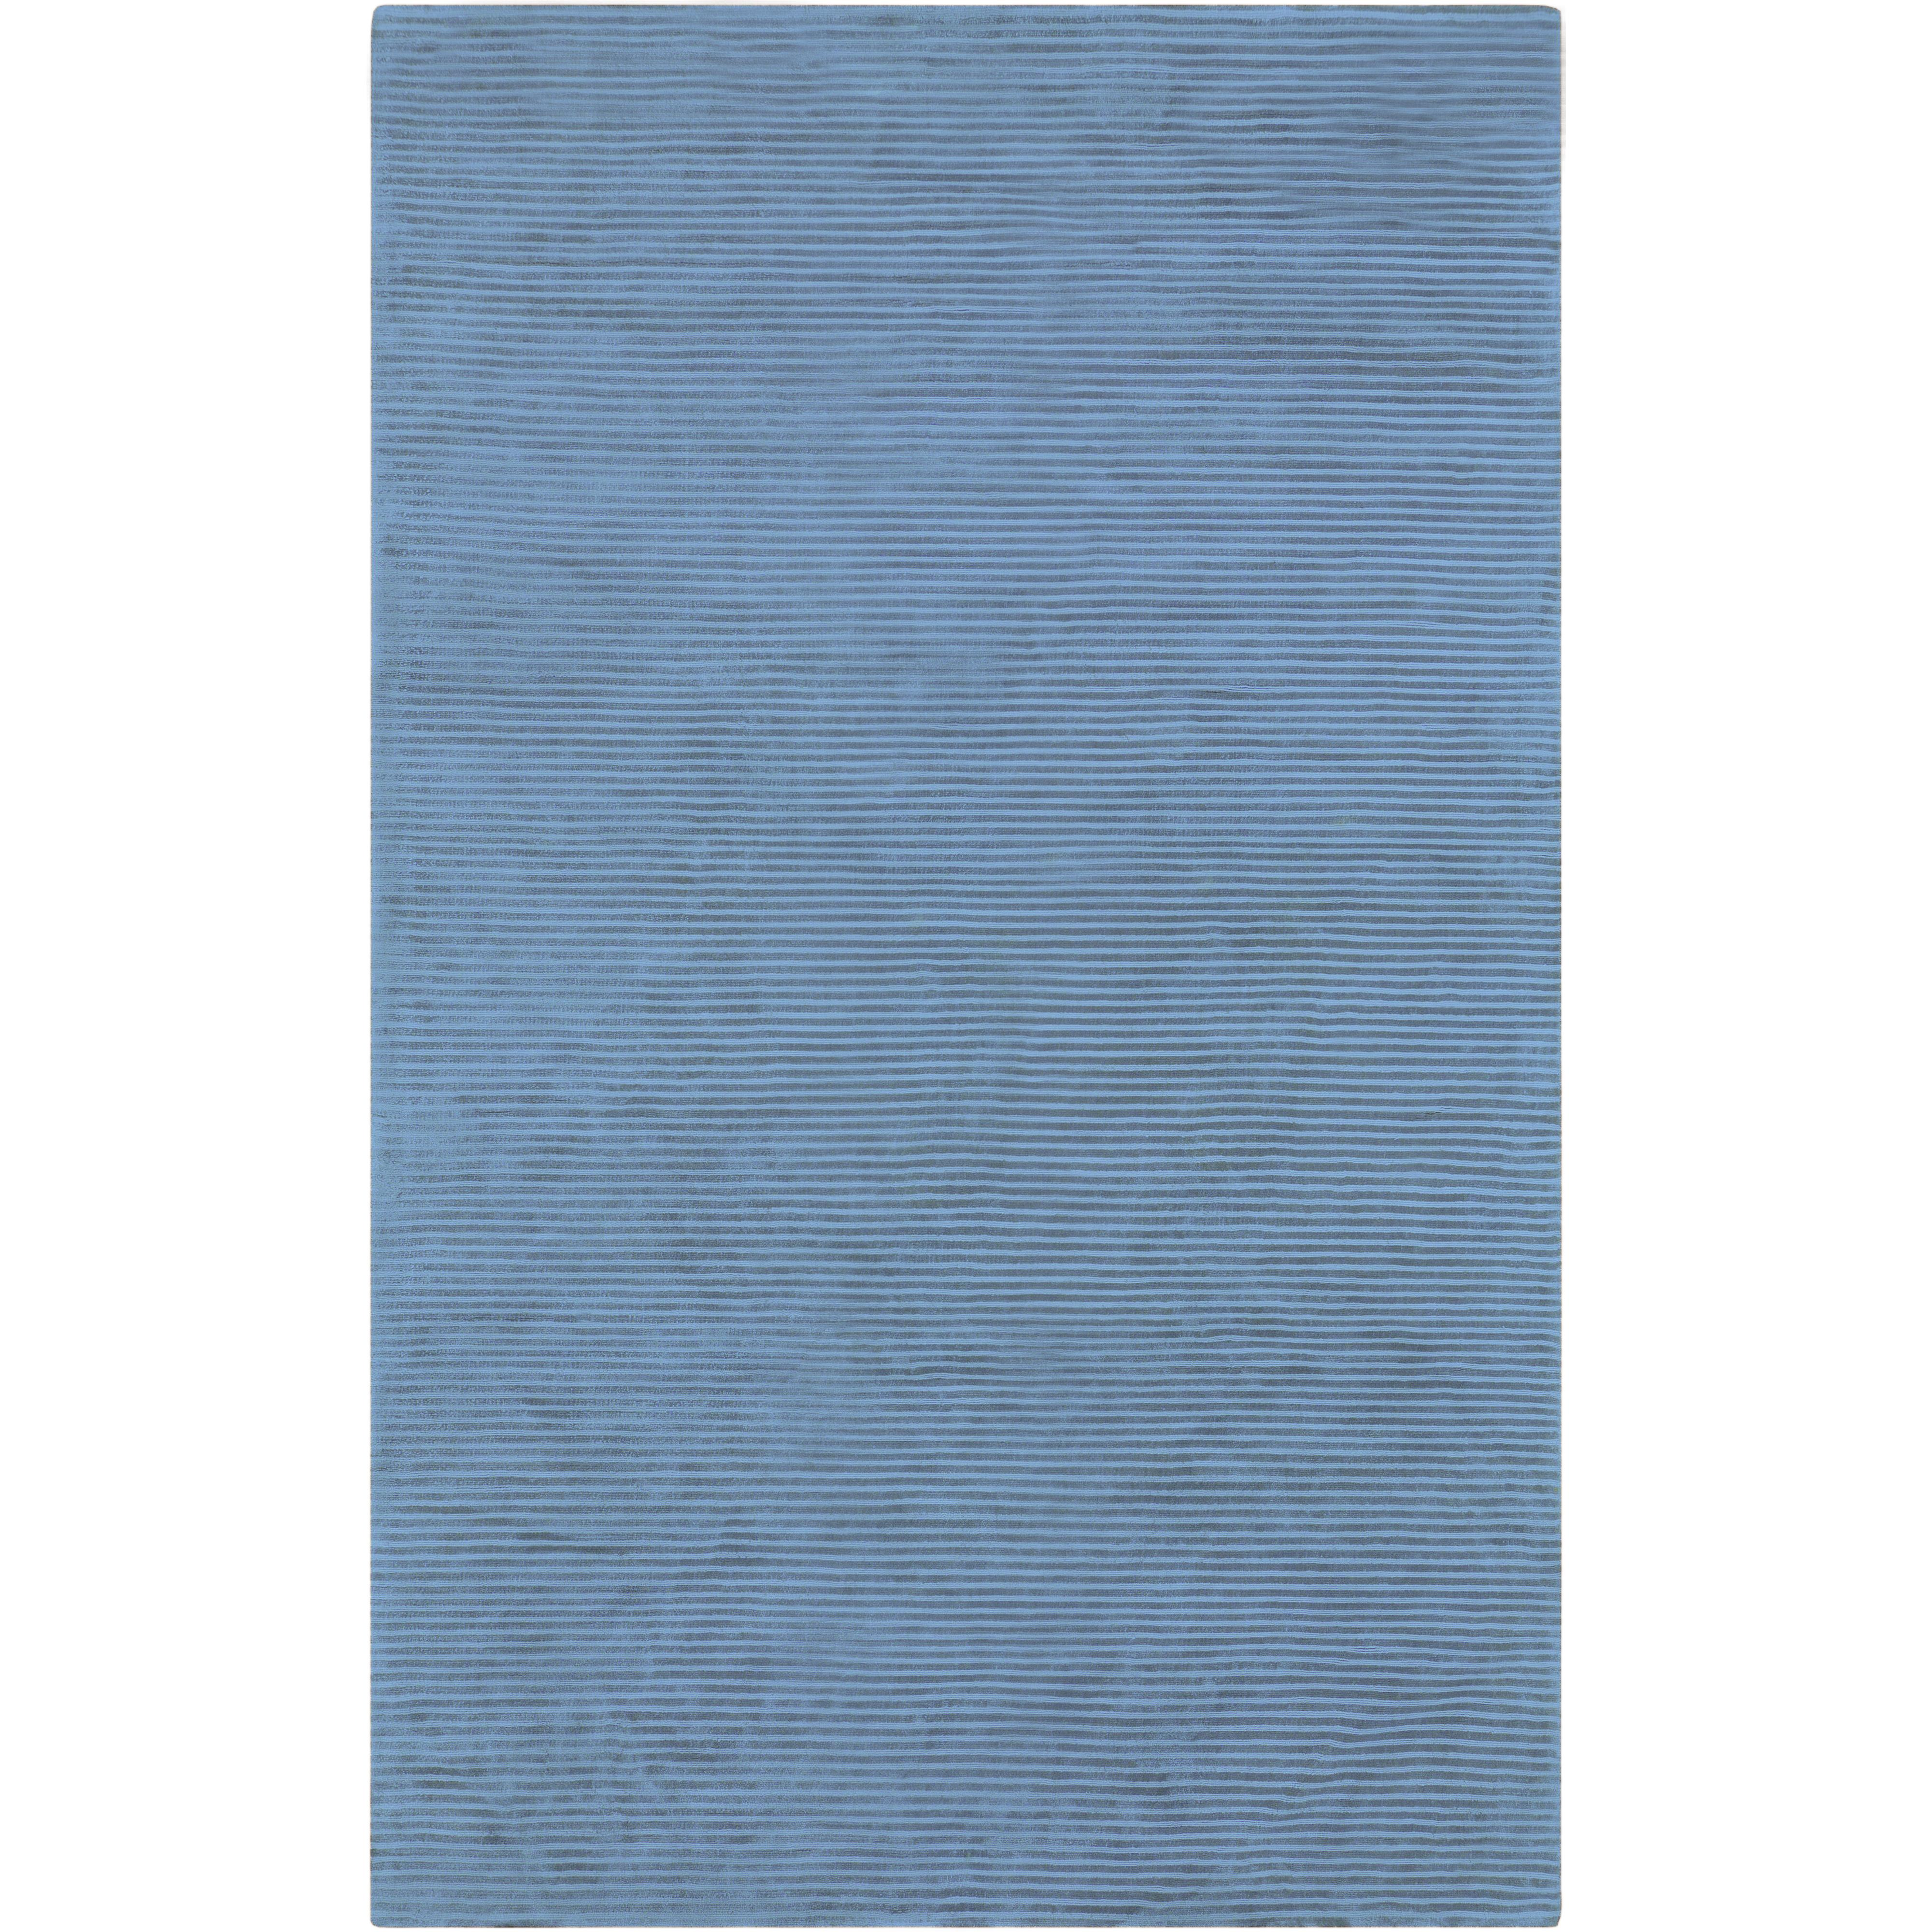 Surya Rugs Graphite 2' x 3' - Item Number: GPH54-23